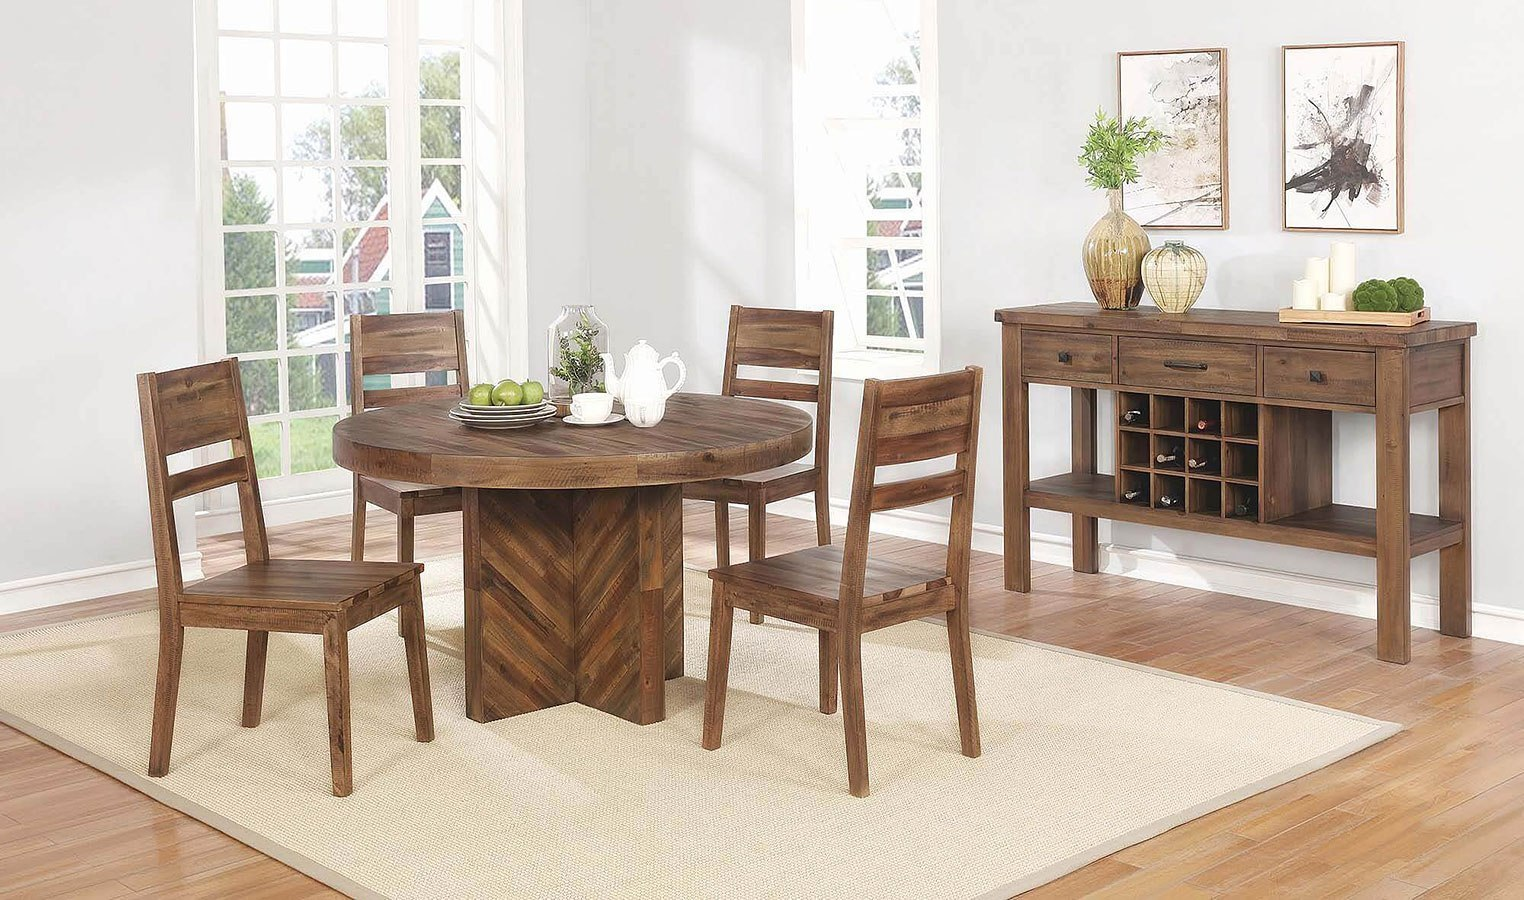 Tucson Round Dining Room Set By Coaster Furniture